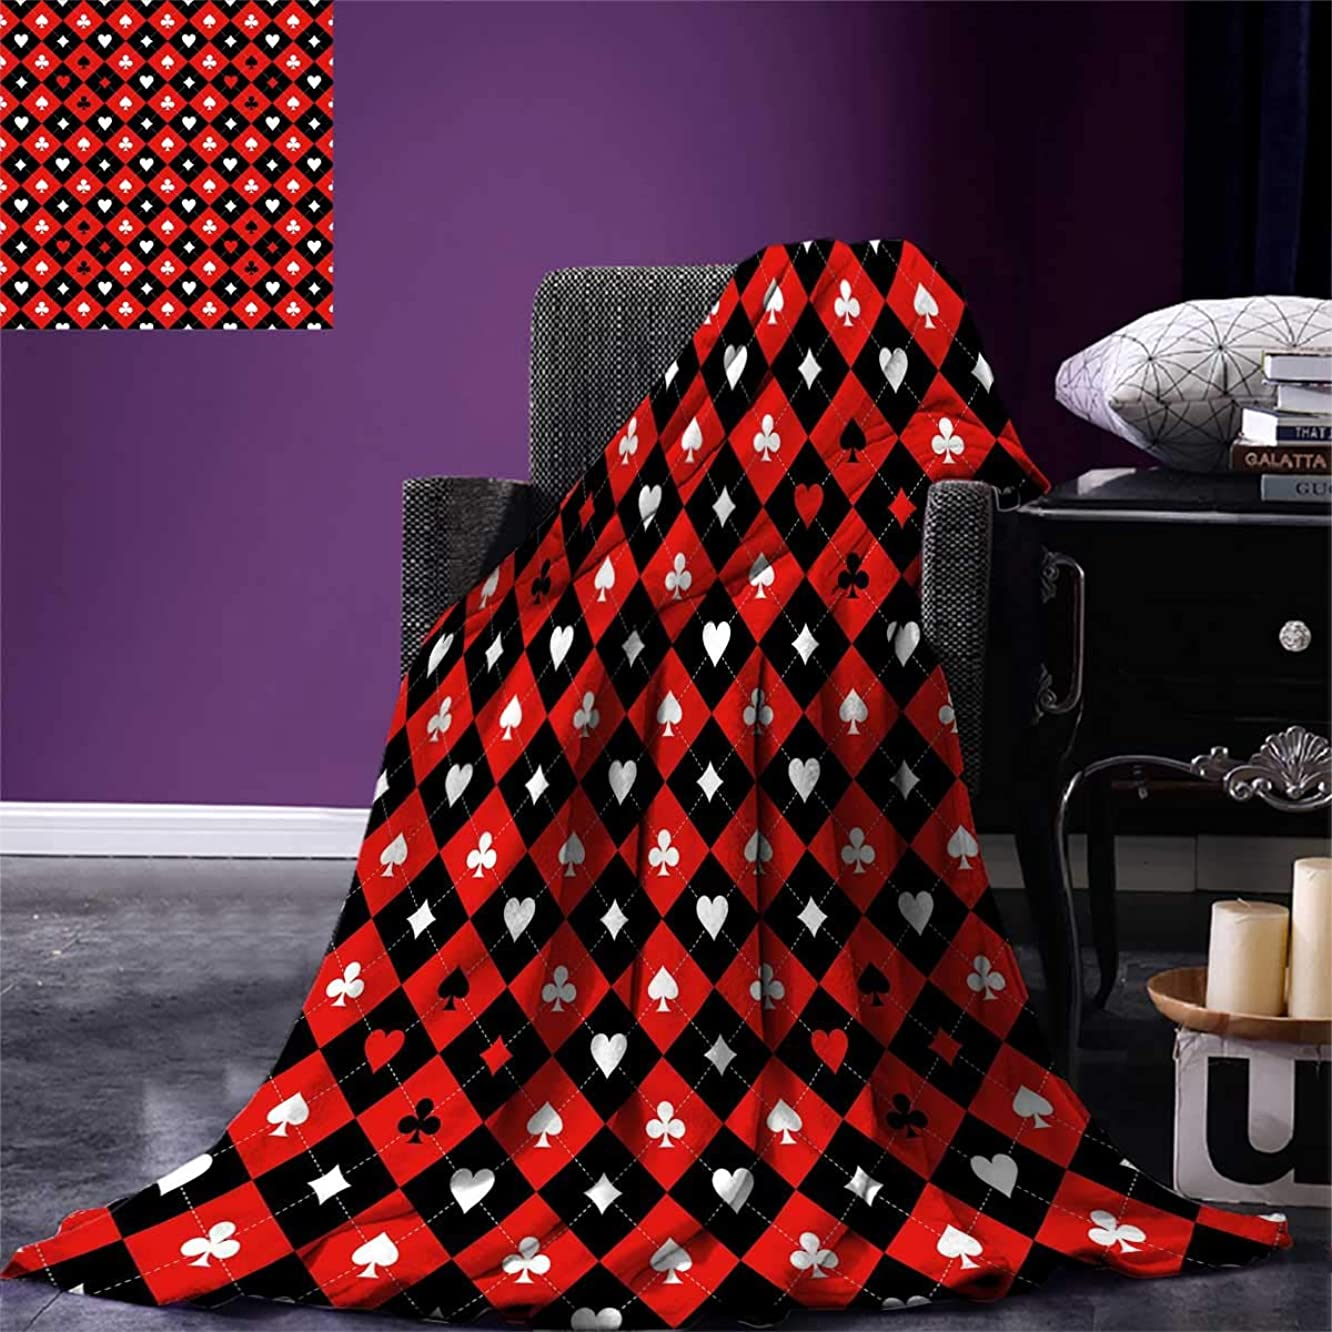 Poker Tournament Decorations,Survival Blanket,Card Suit Chess Board Classic Checkered Pattern Symbols,Print,Red Black White,Size:50